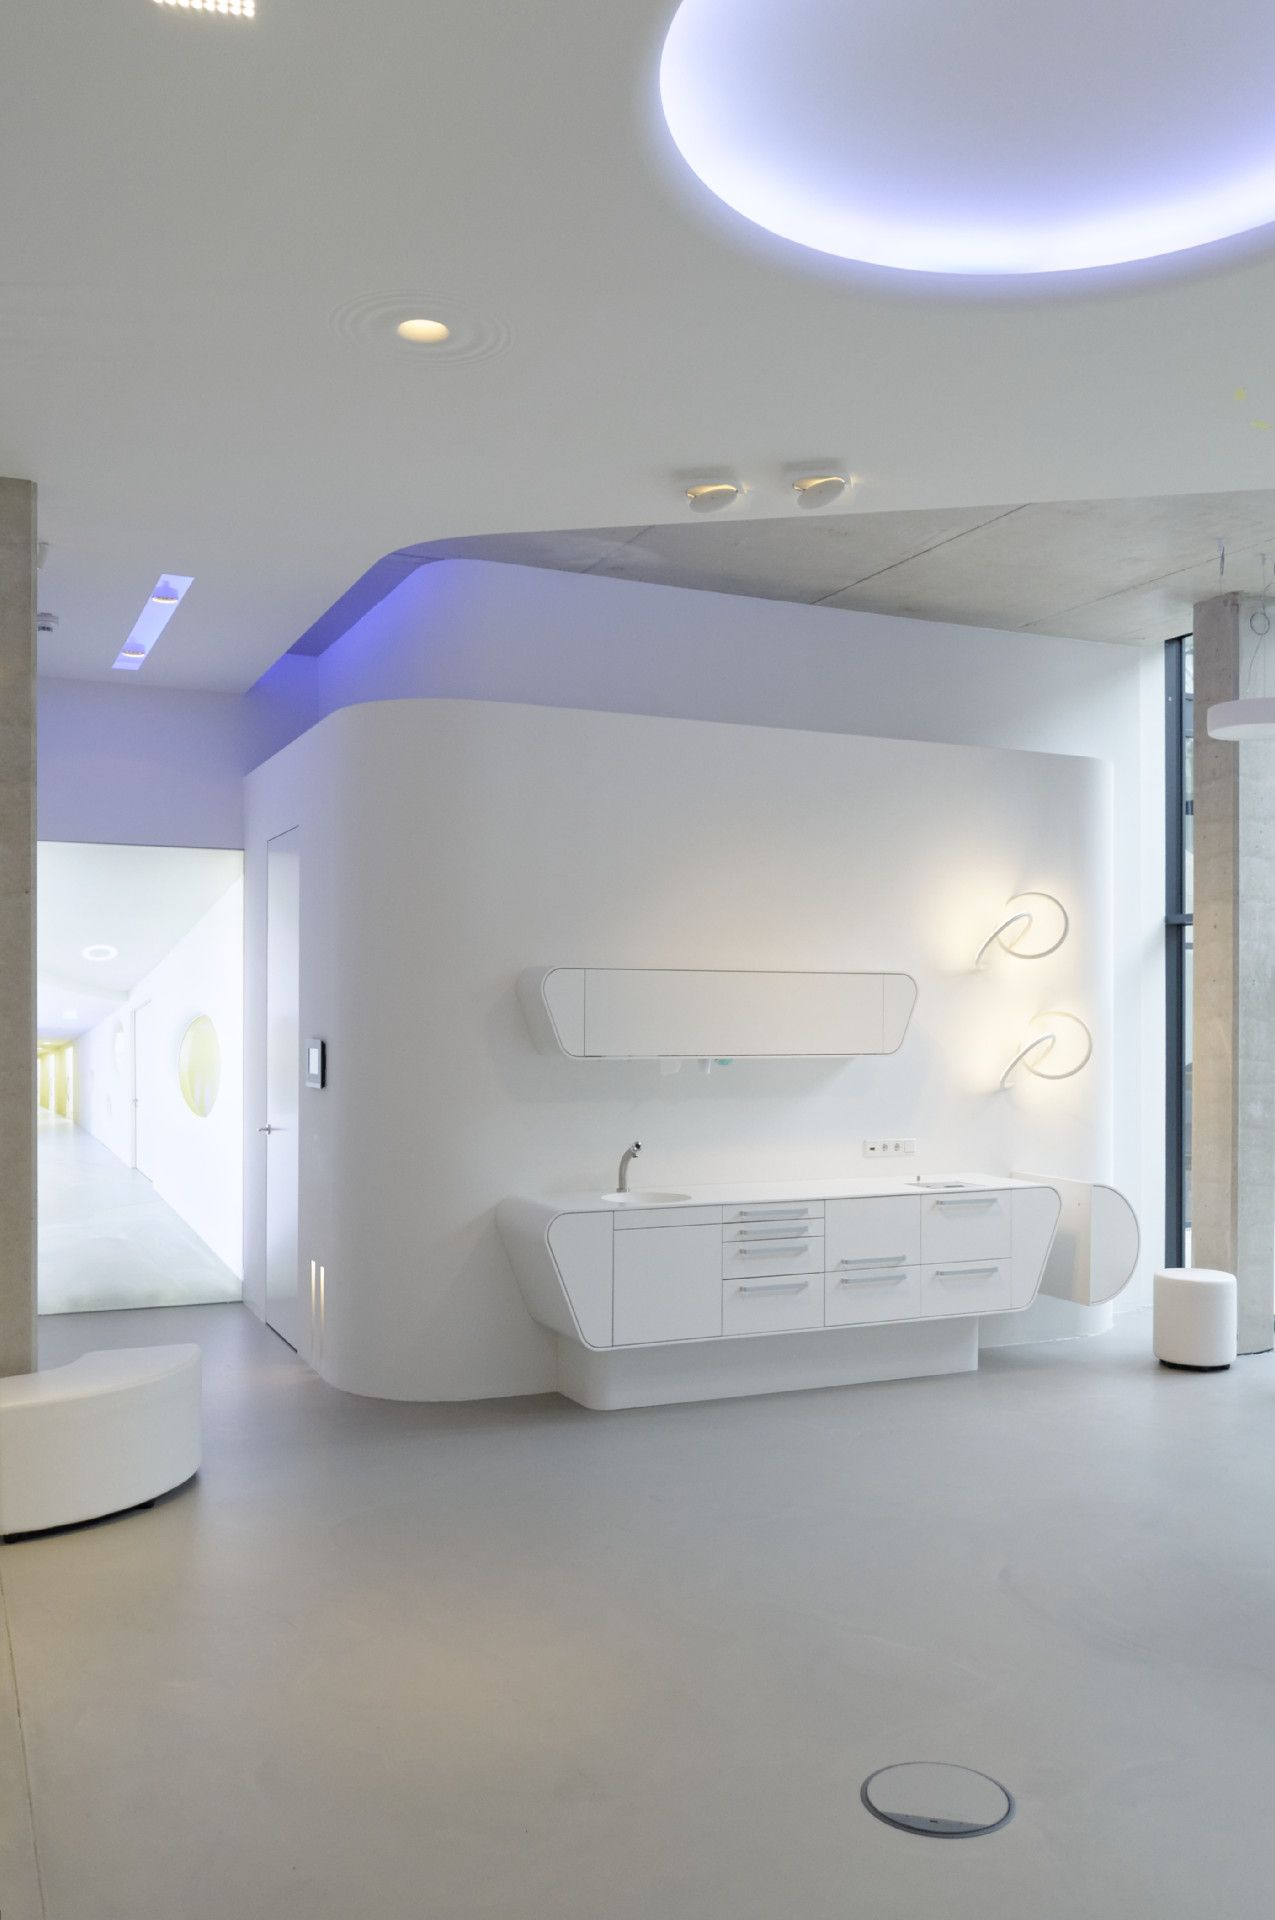 Innenbeleuchtung Design Quote Flos Wall Piercing Flos Soft Architecture Uso Cove Lighting